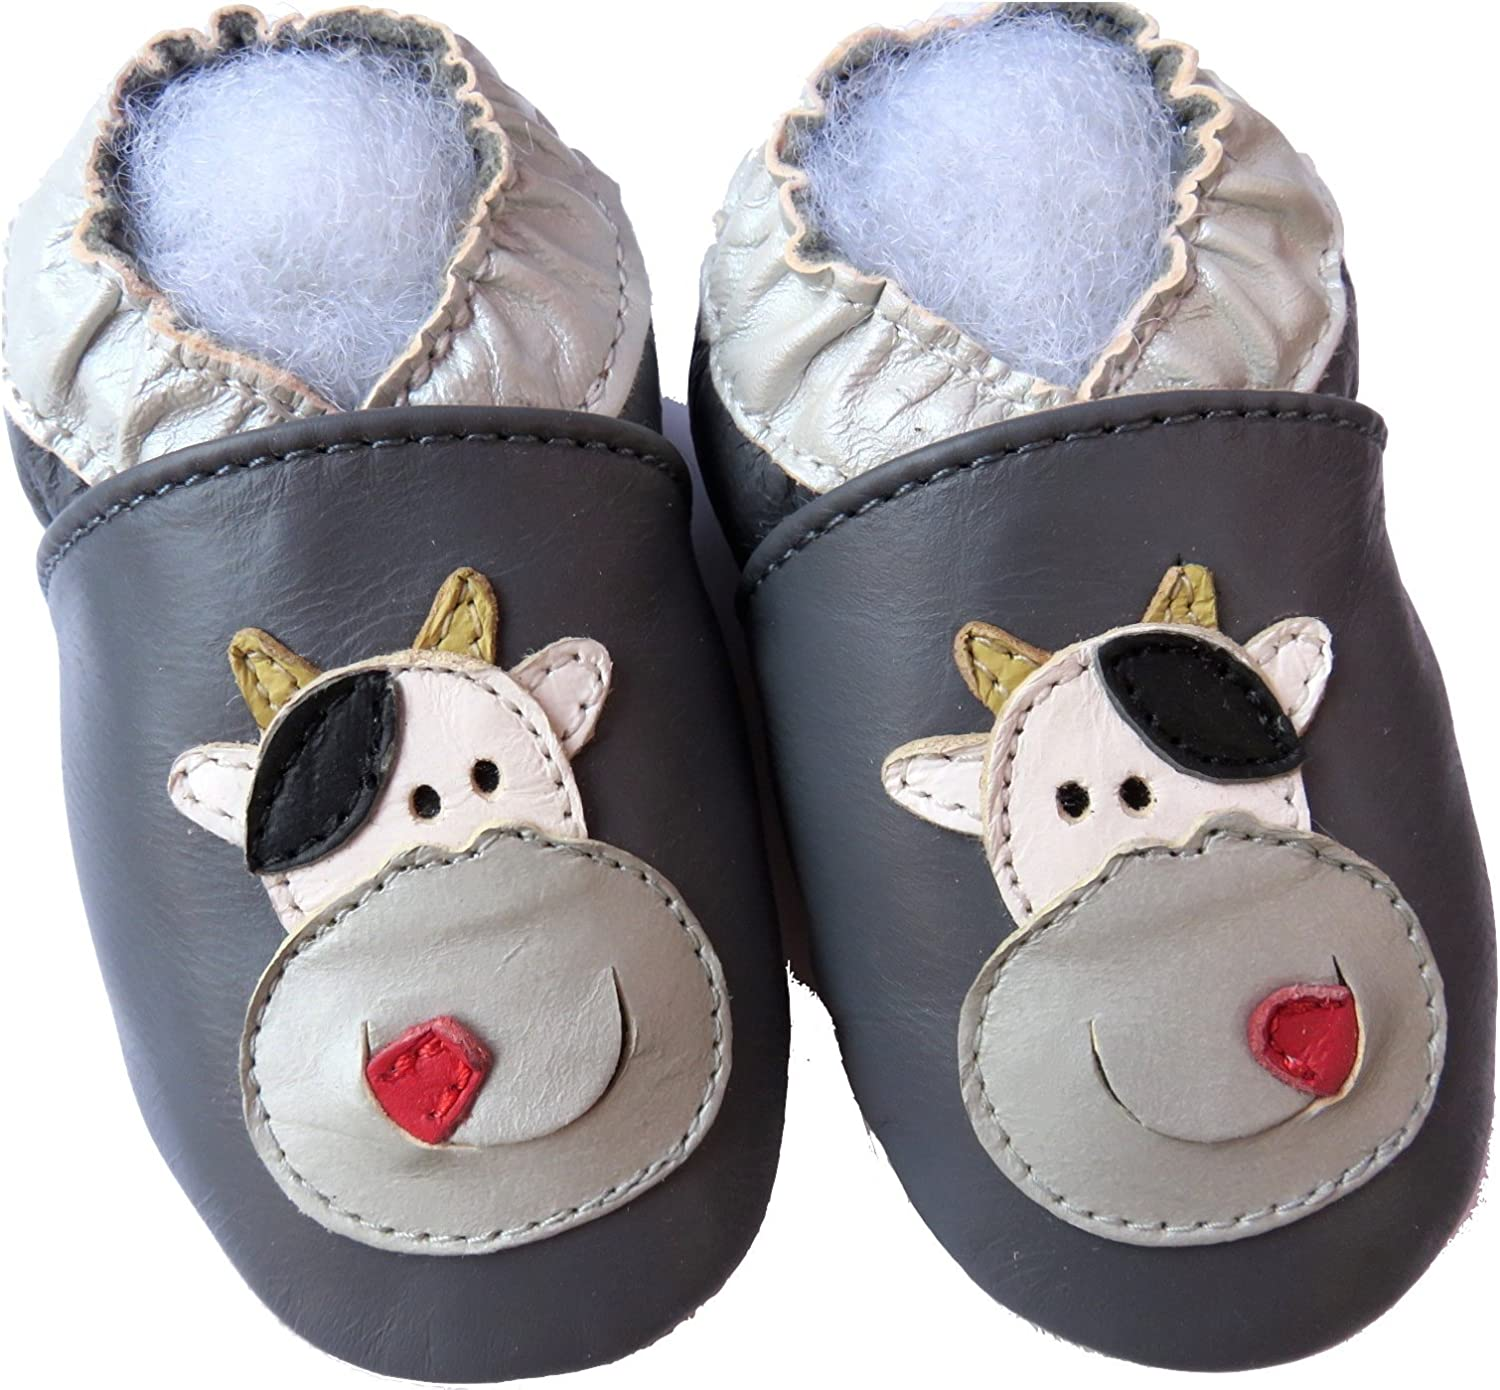 Minishoezoo soft sole baby leather shoes hippo gray 6-12m  walking free shipping